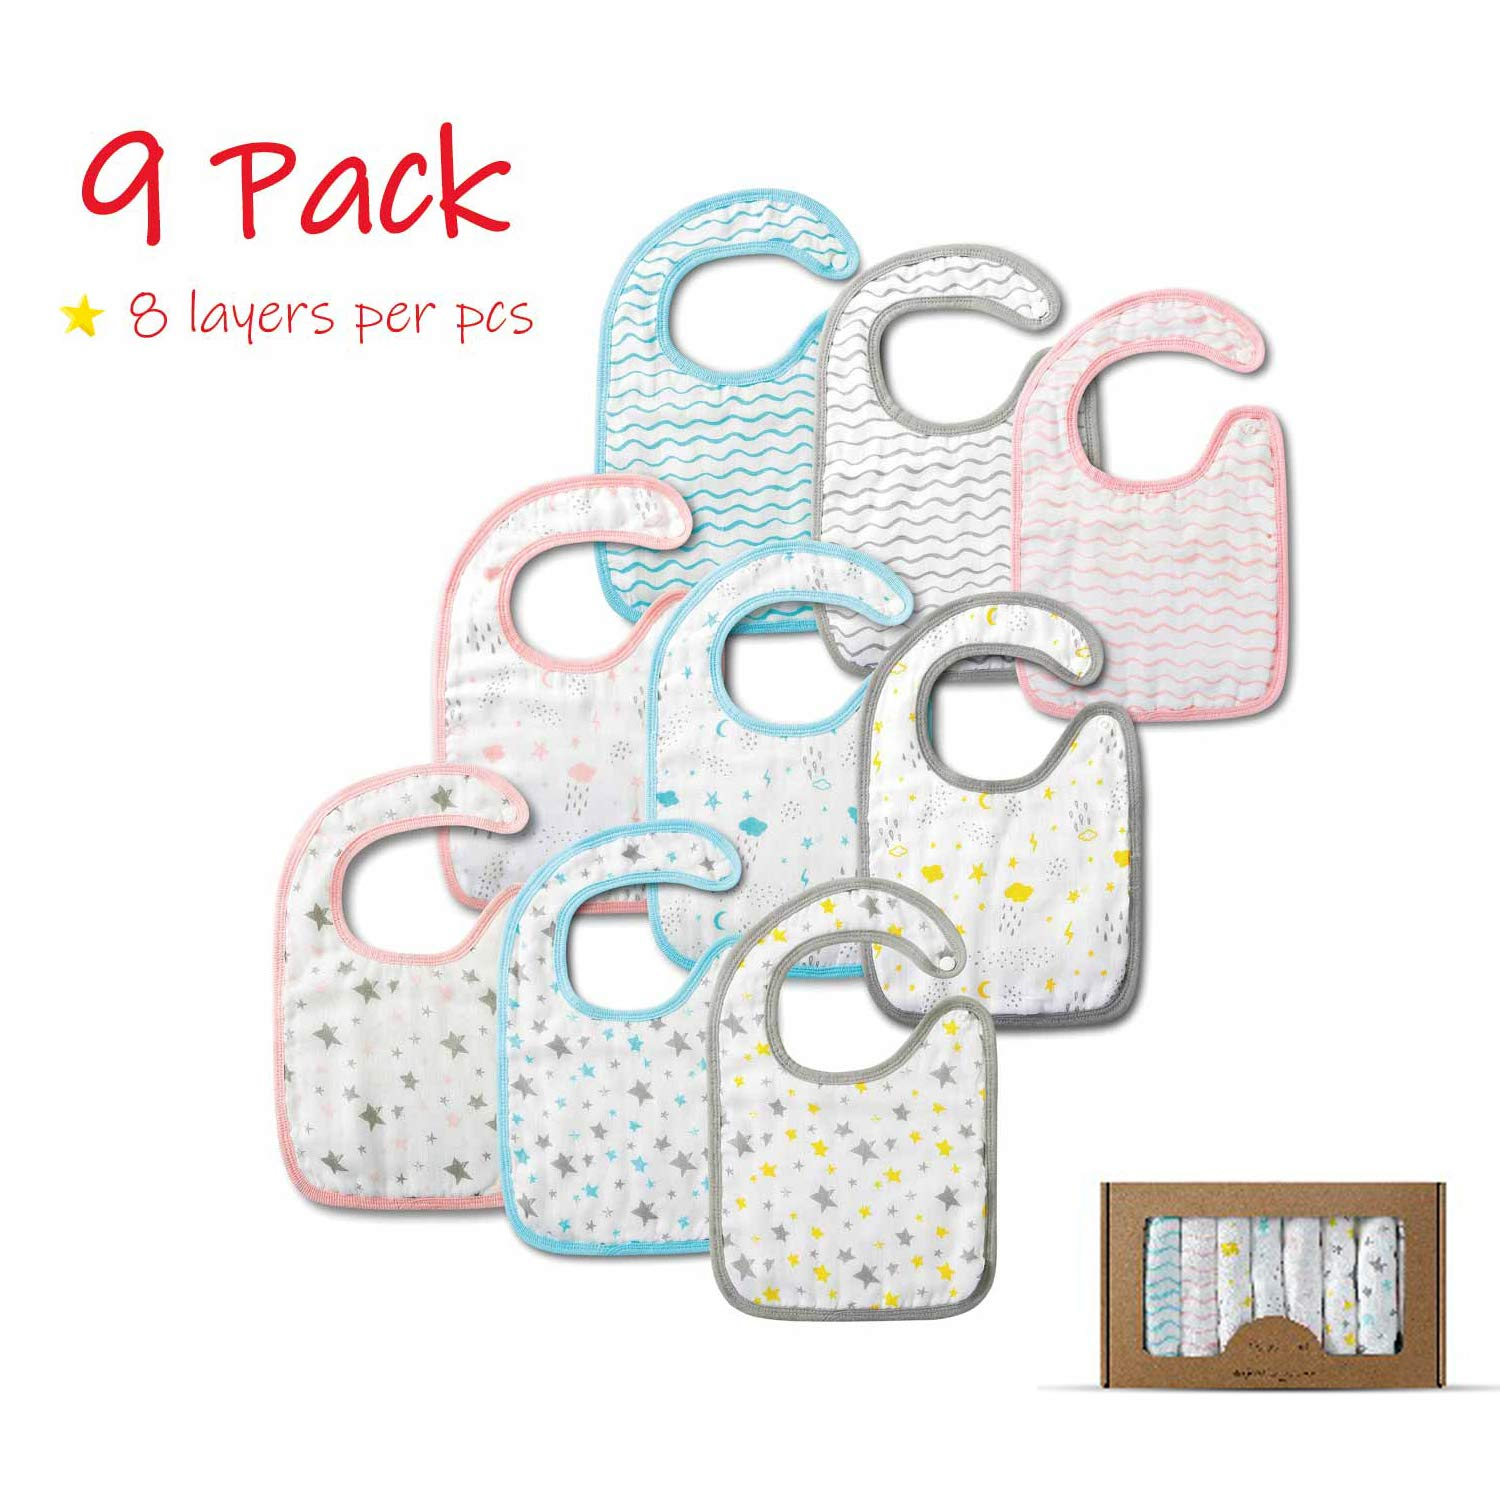 8 Layers 100/% Cotton Muslin Baby Shower Gift Set for Drooling,Sung,Feeding and Teethiper Absorbent Snap Button Bibs for Baby Boys,Girls. Little Grape Land 9 Pack Extra Large Muslin Baby Bib